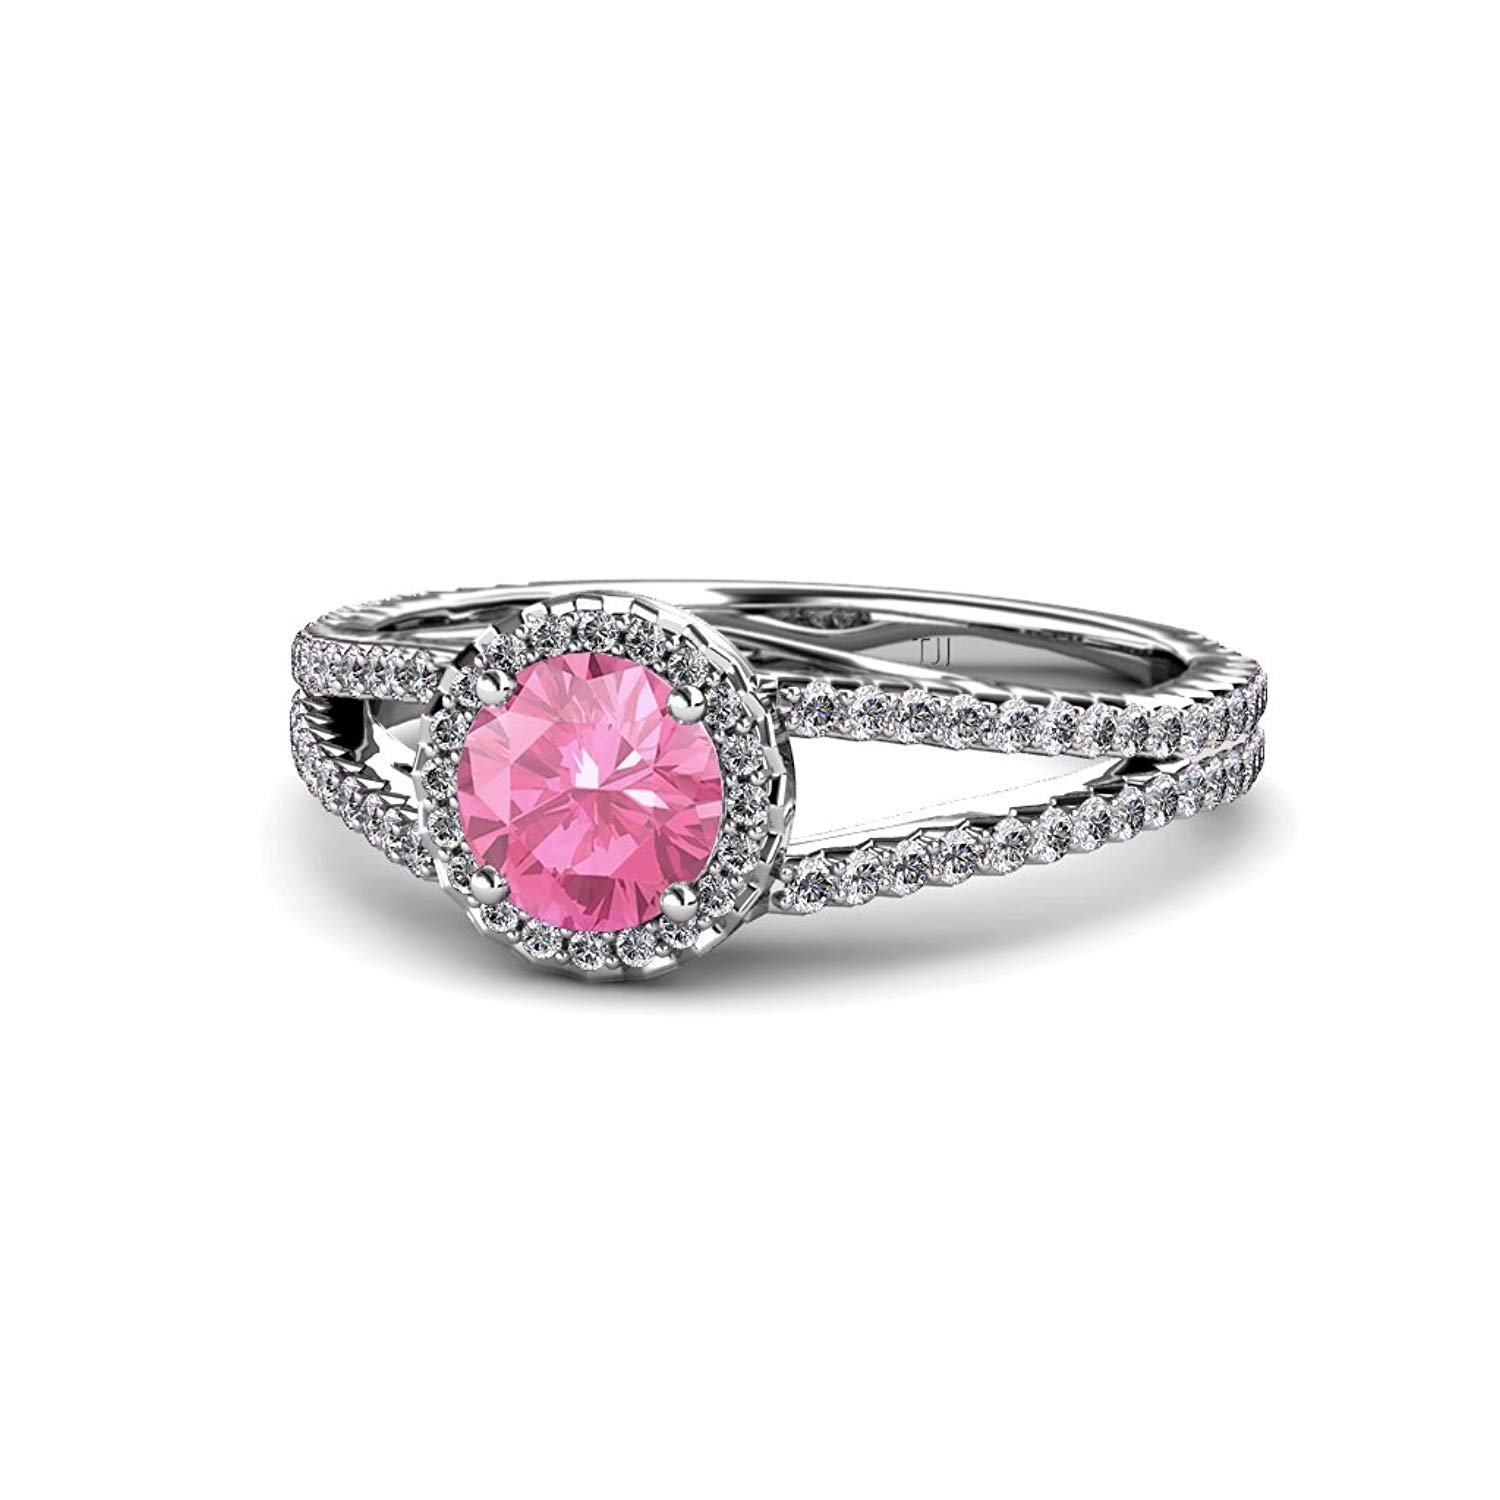 Pink Tourmaline and Diamond (SI2-I1, G-H) Halo Engagement Ring 1.38 ct tw in 14K White Gold.size 4.5 by TriJewels